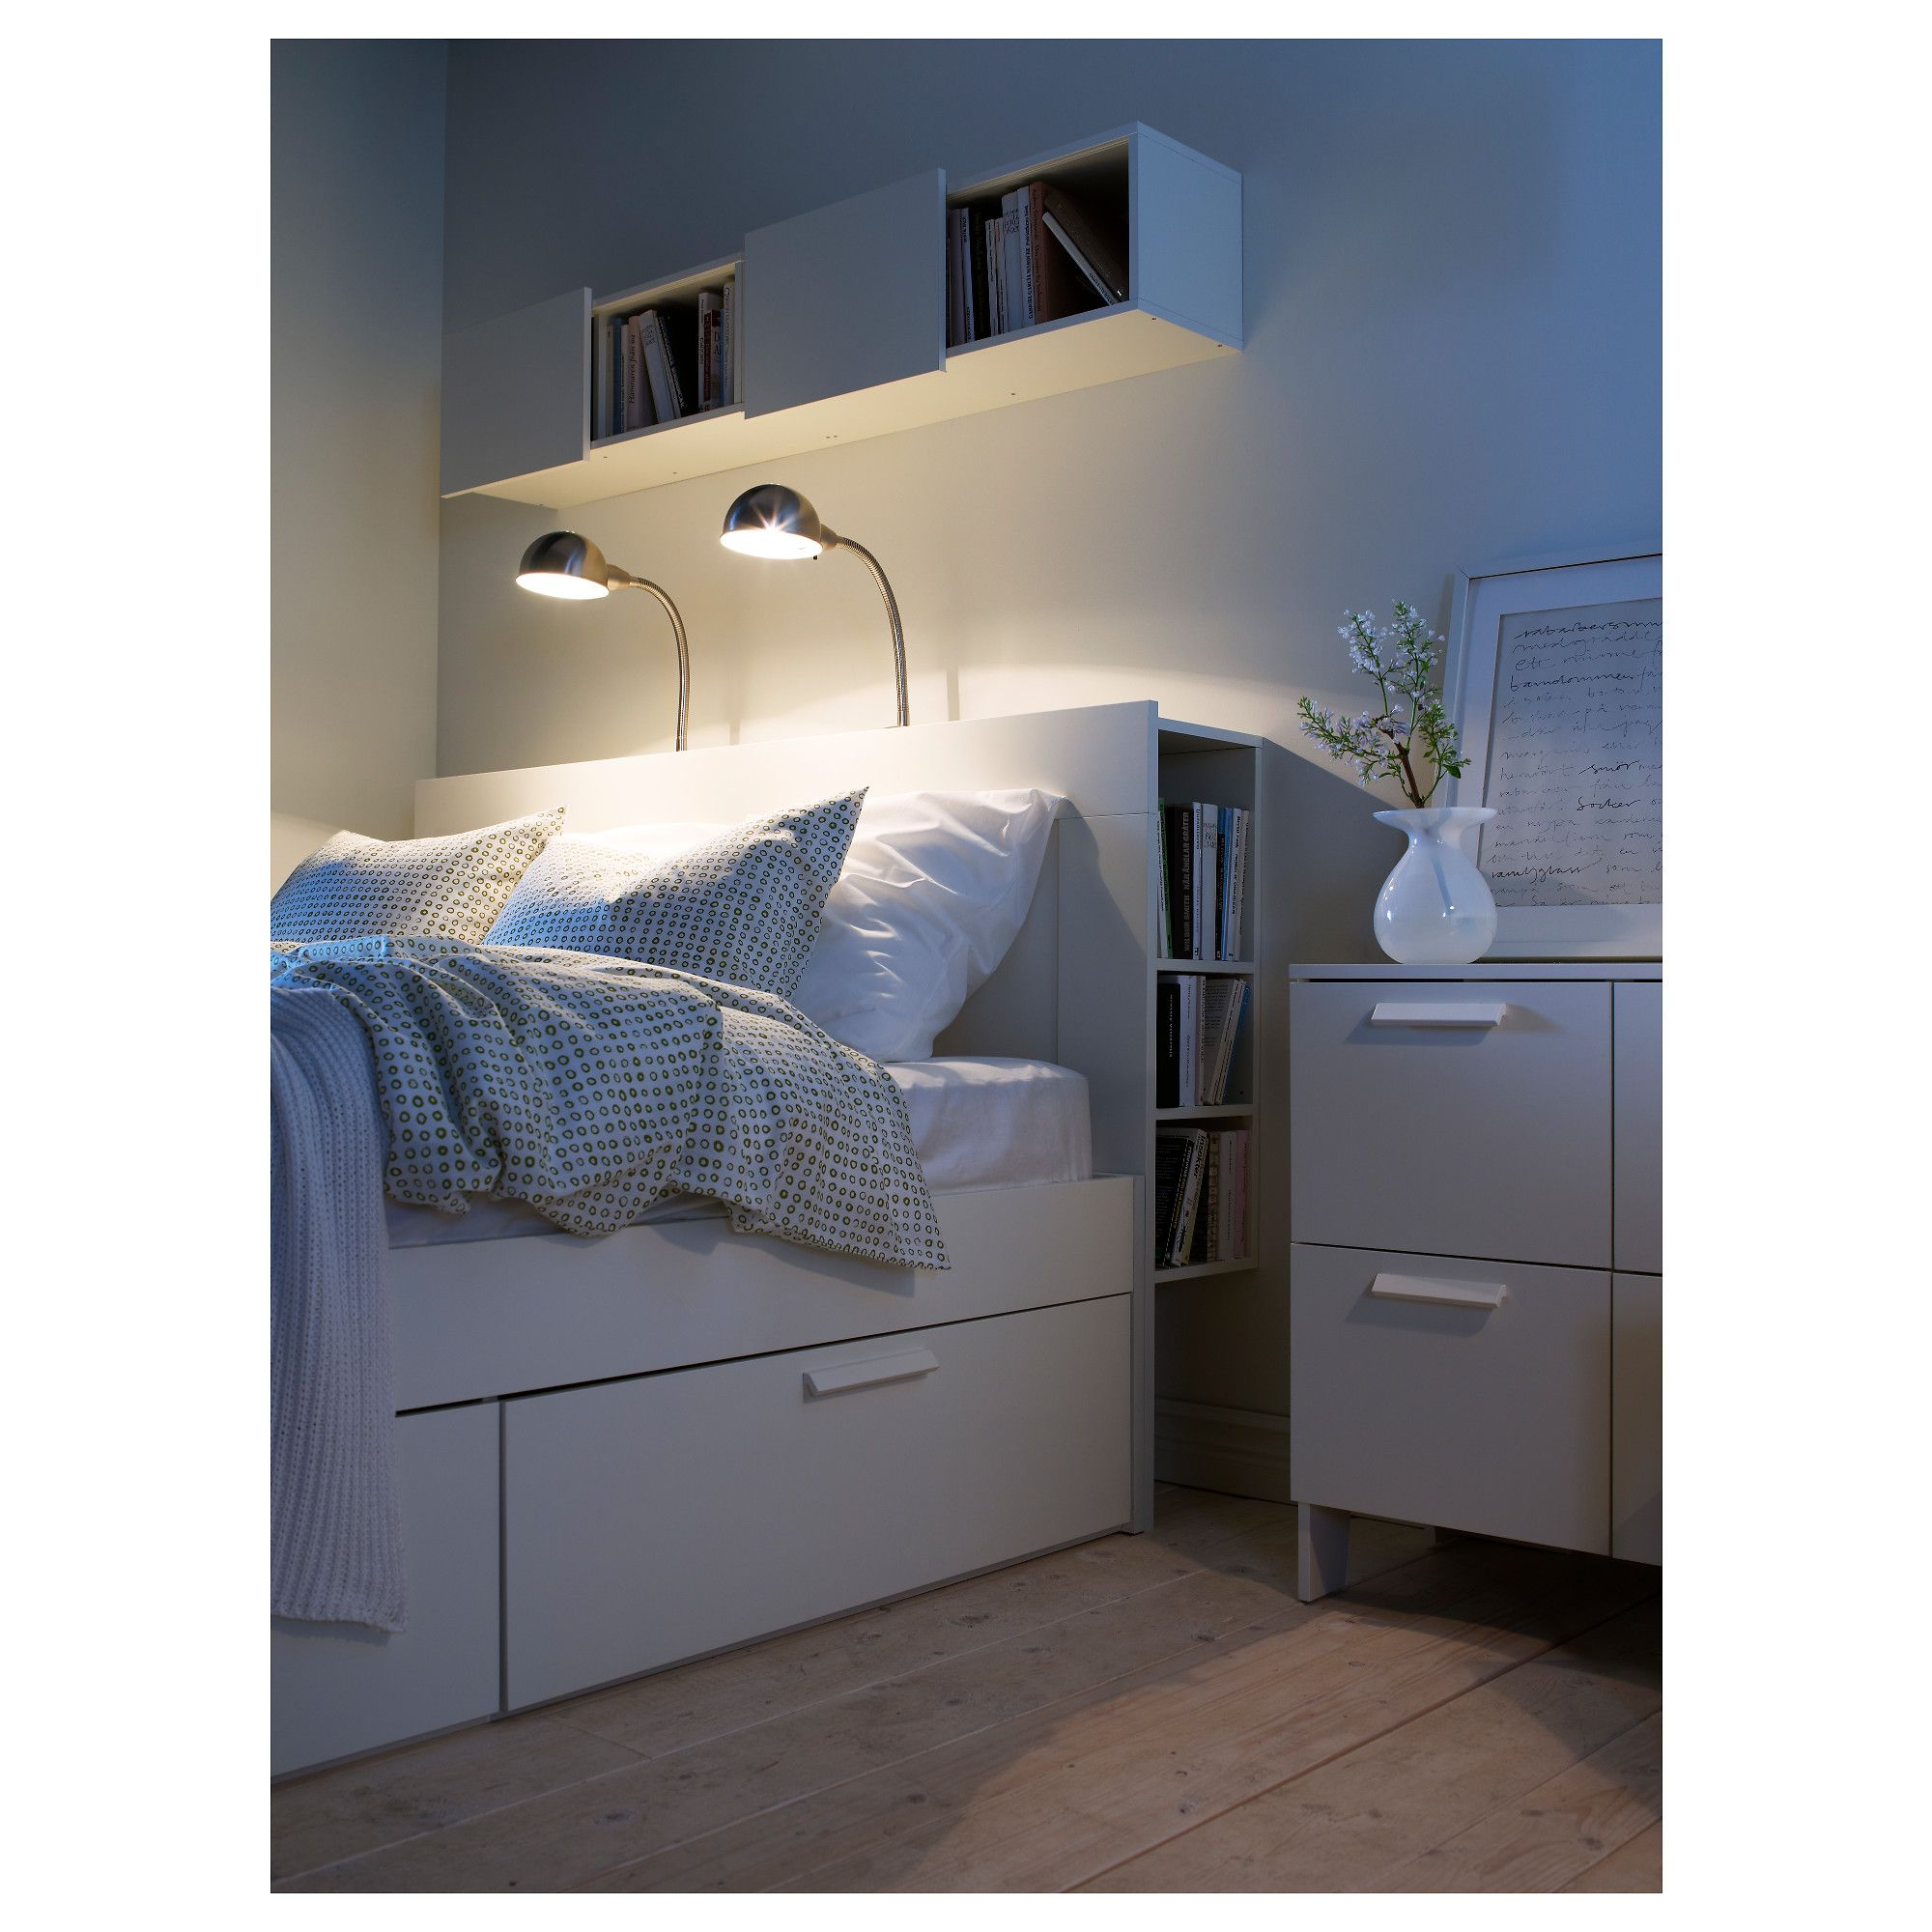 Ikea Mandal Headboard Canada Ikea - Brimnes Headboard With Storage Compartment White In